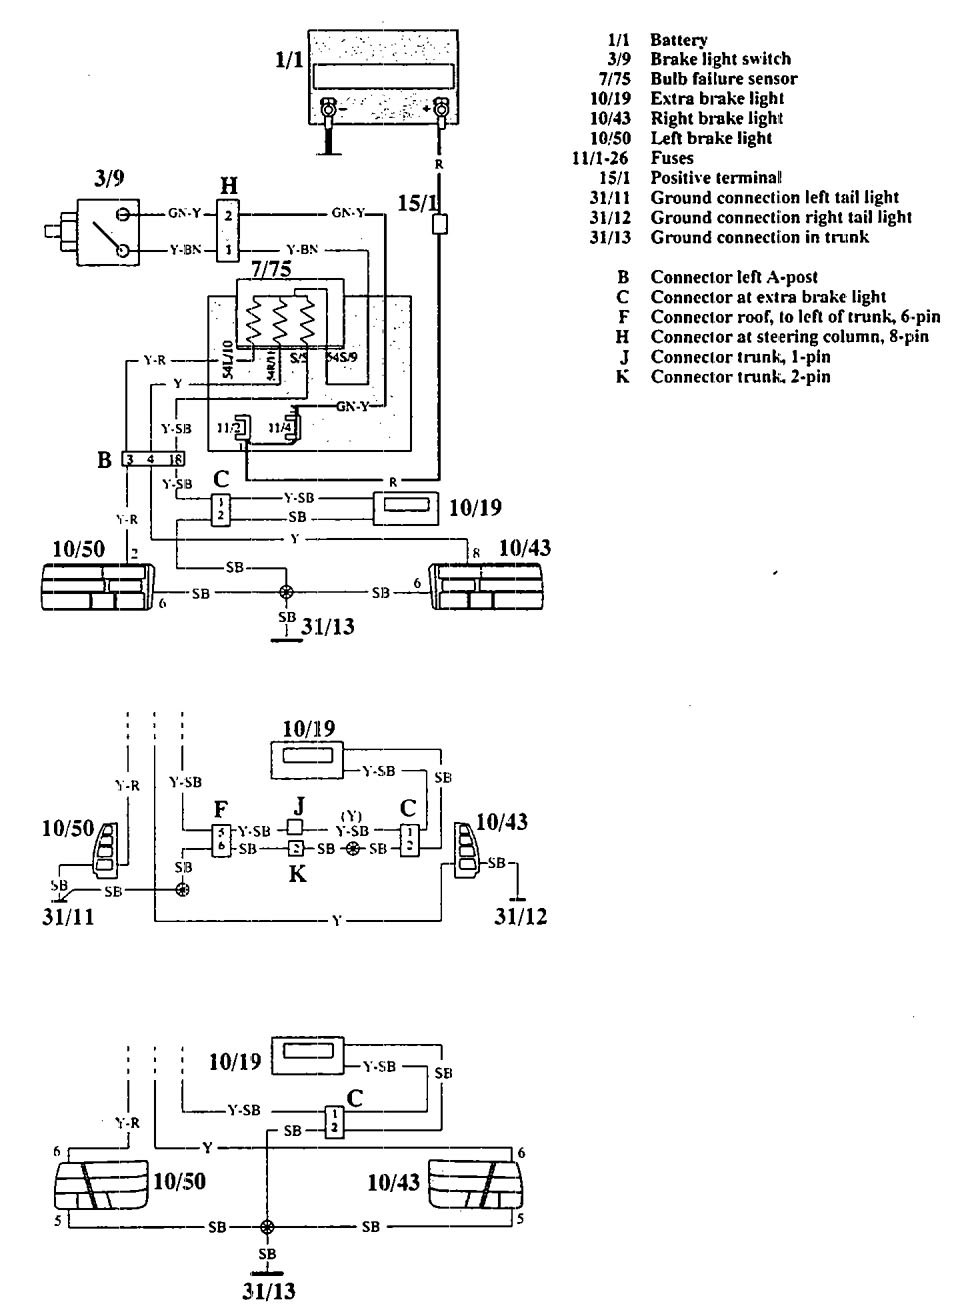 volvo 91 240 wiring diagrams all wiring diagram 1994 Volvo 240